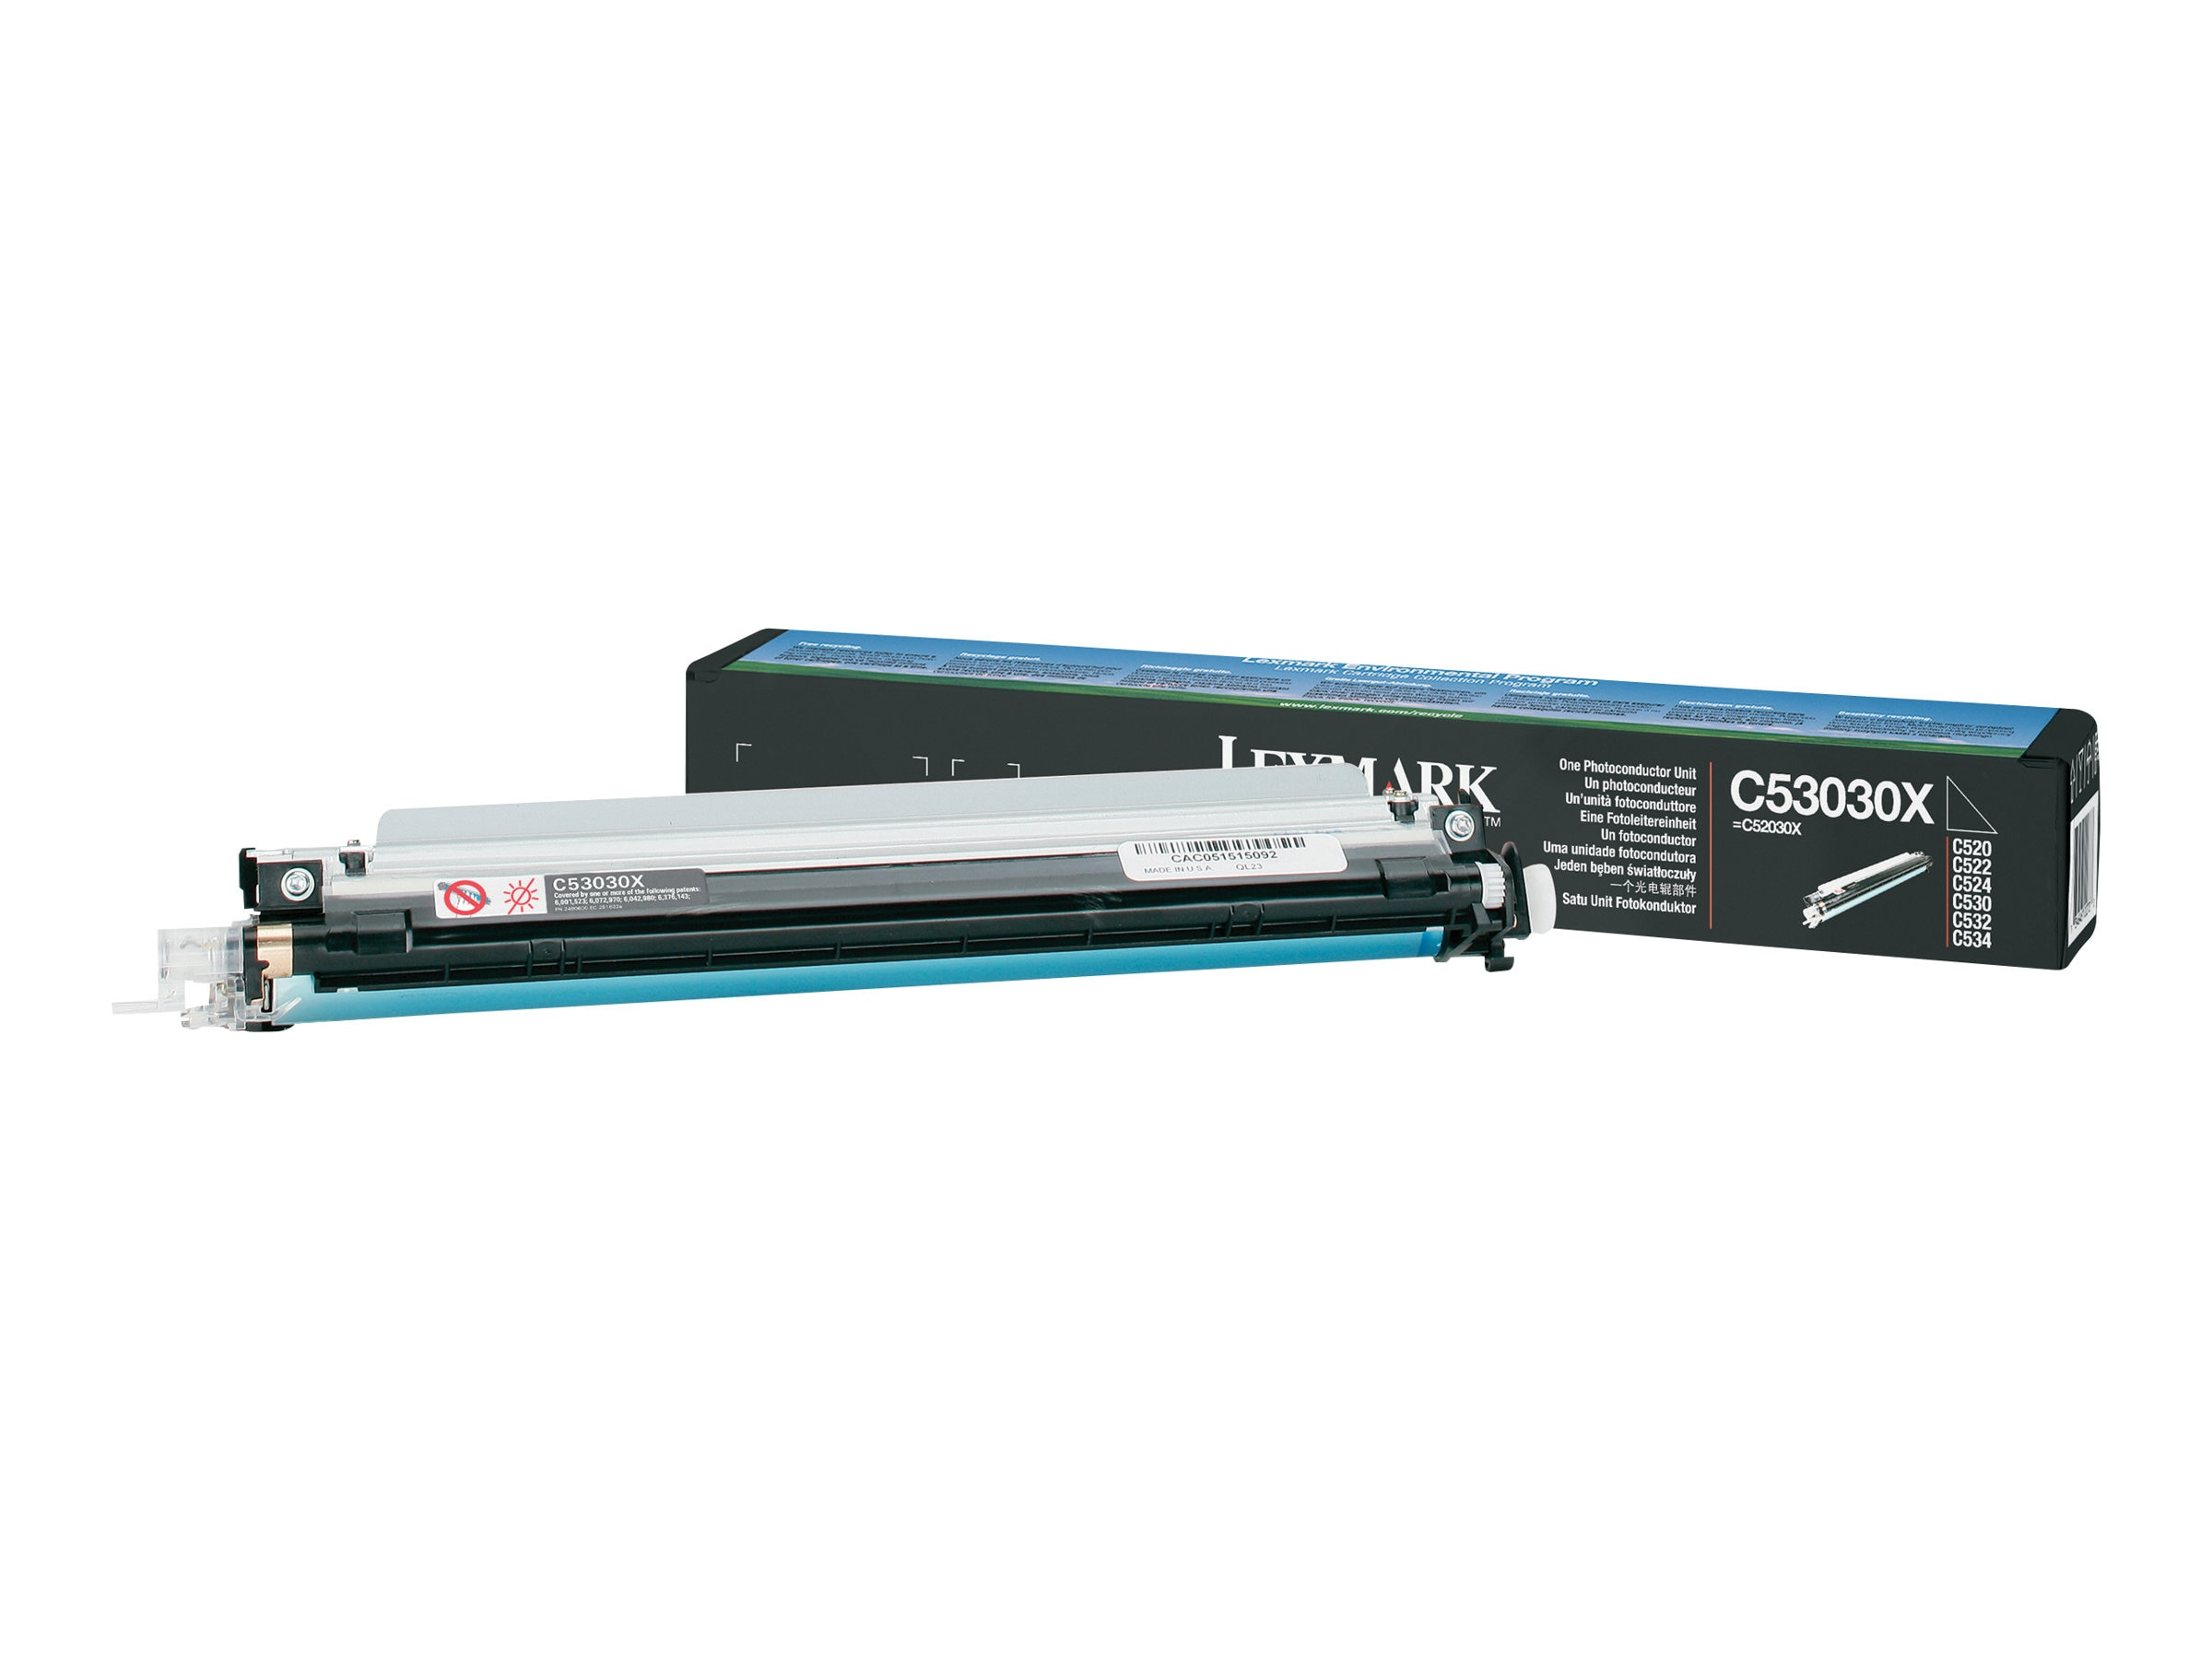 Lexmark Photoconductor Unit for C530DN C532N C534N Printers, C53030X, 7282291, Toner and Imaging Components